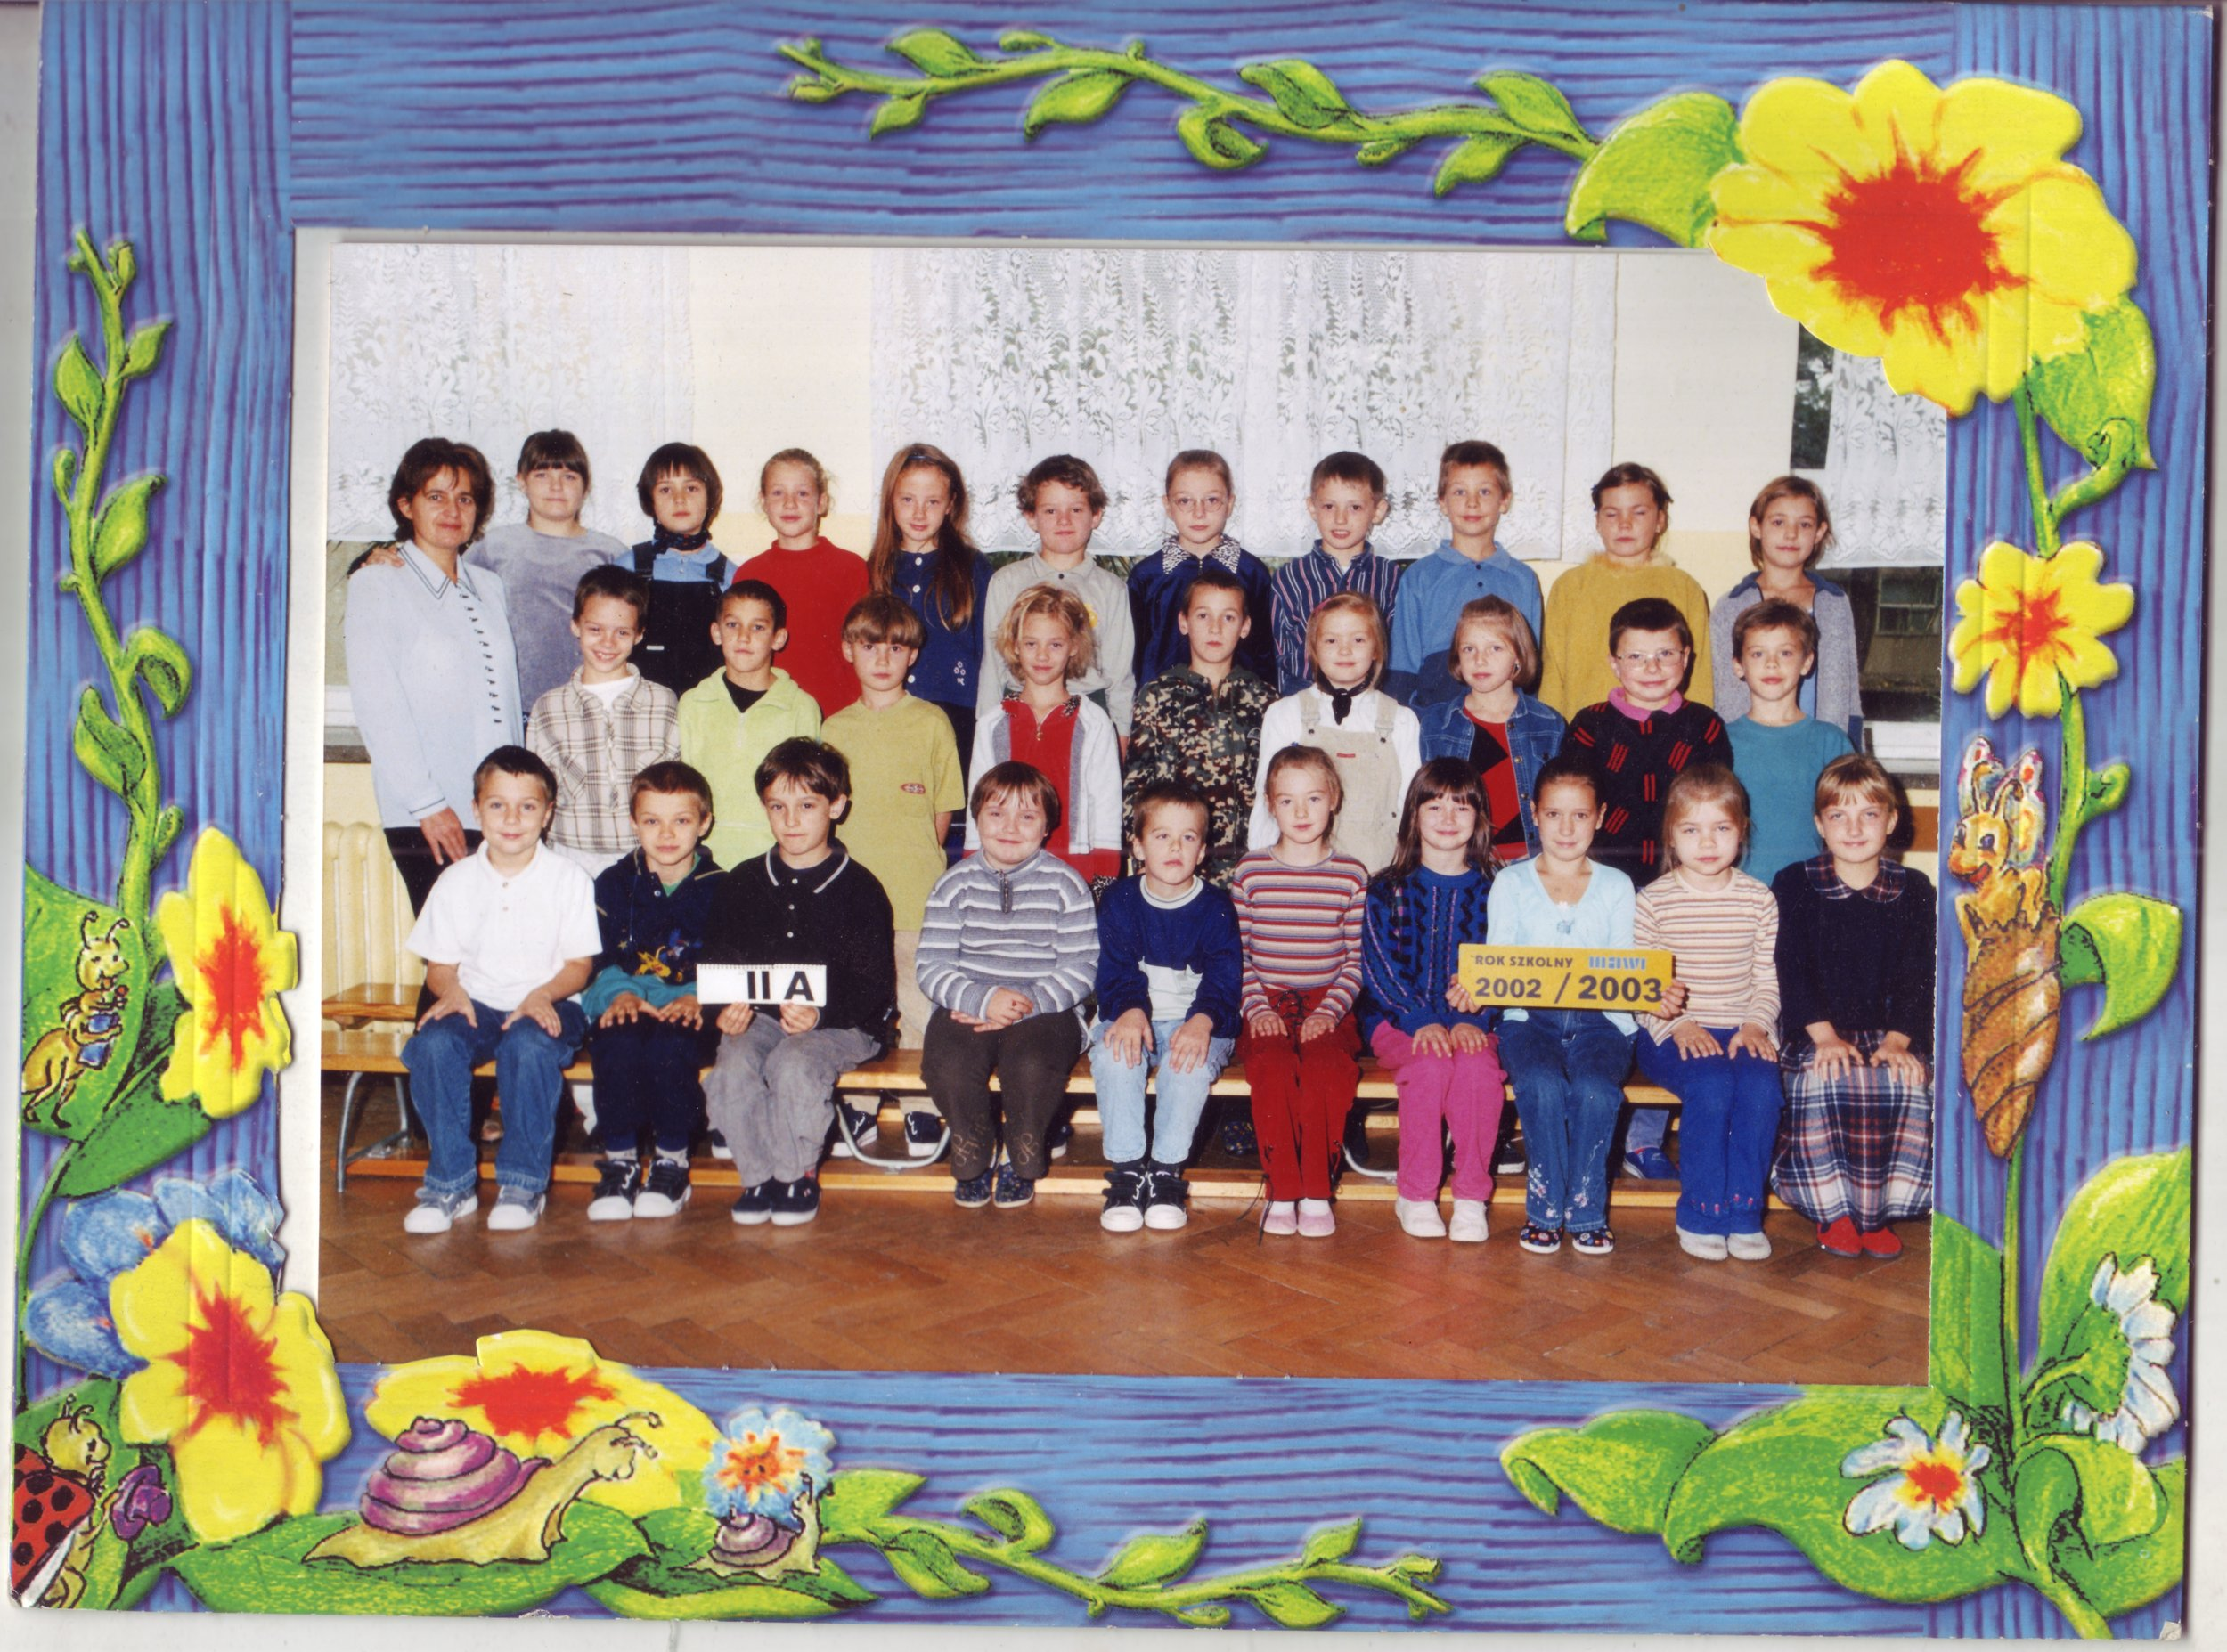 This is my daughter Lydia's second grade class picture. She's in the front row in the blue sweater/hot pink pants.